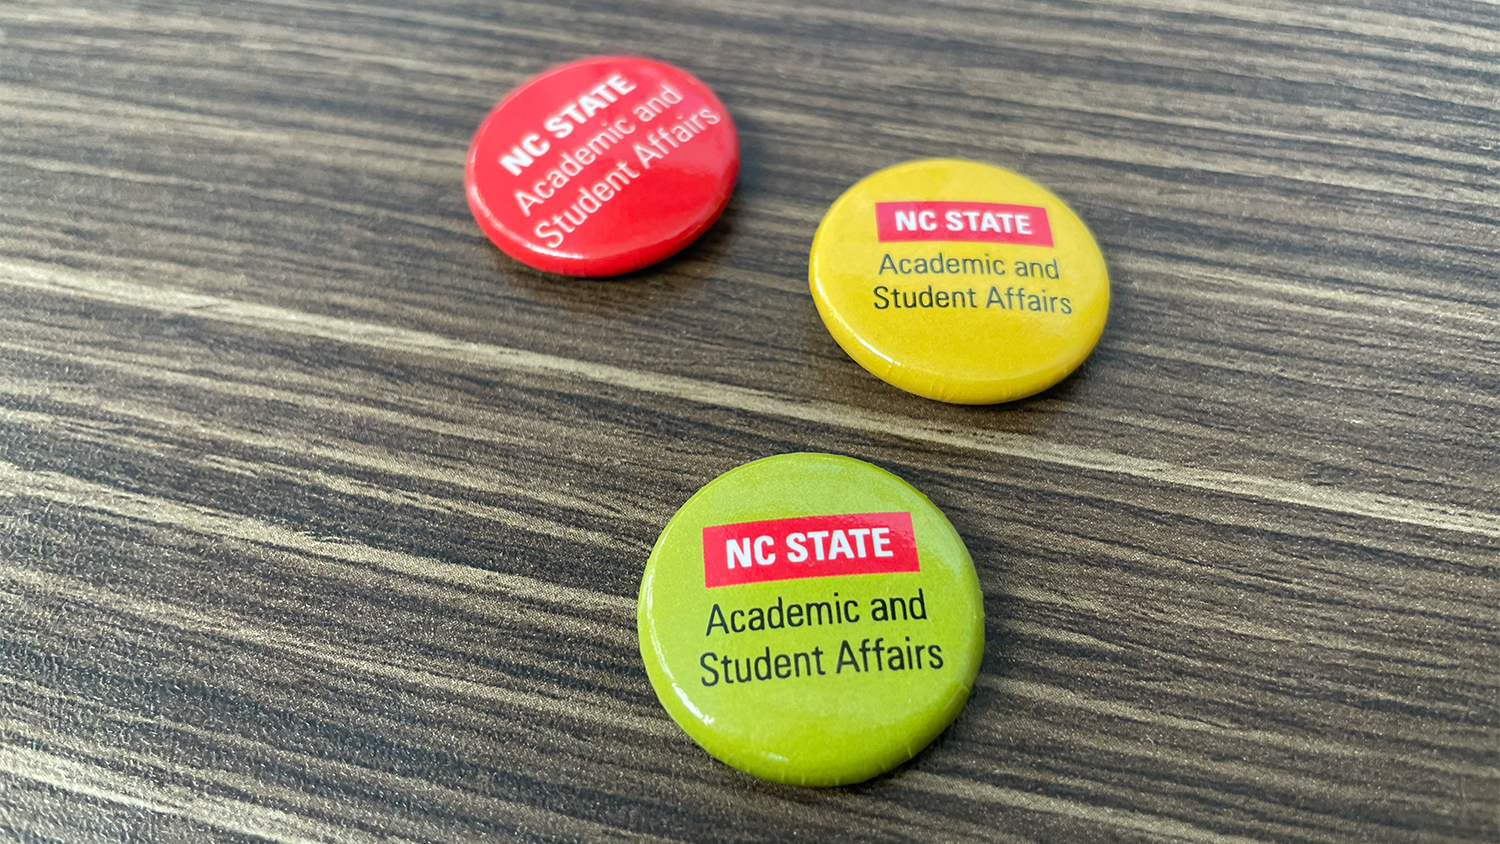 Red, yellow and green buttons with the NC State Academic and Student Affairs logo on them